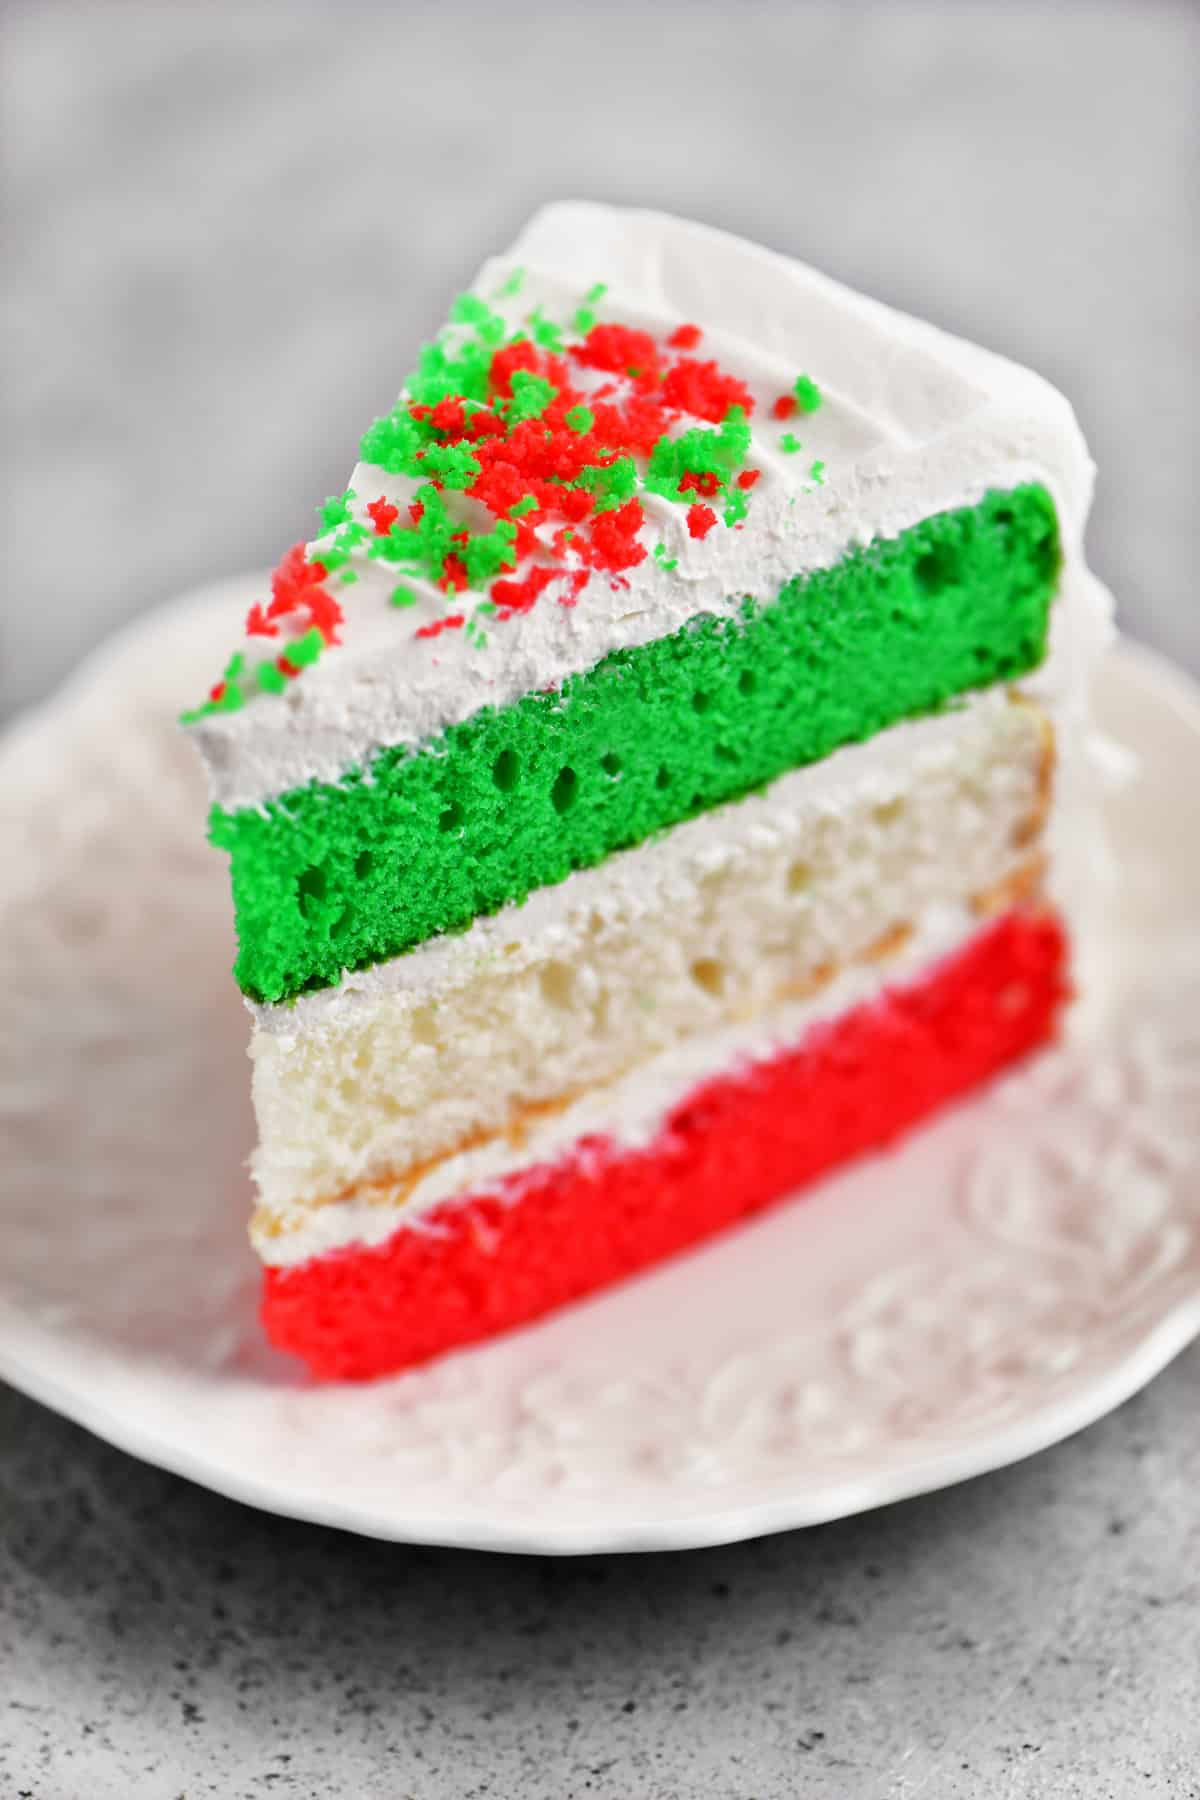 a piece of Christmas cake on a plate